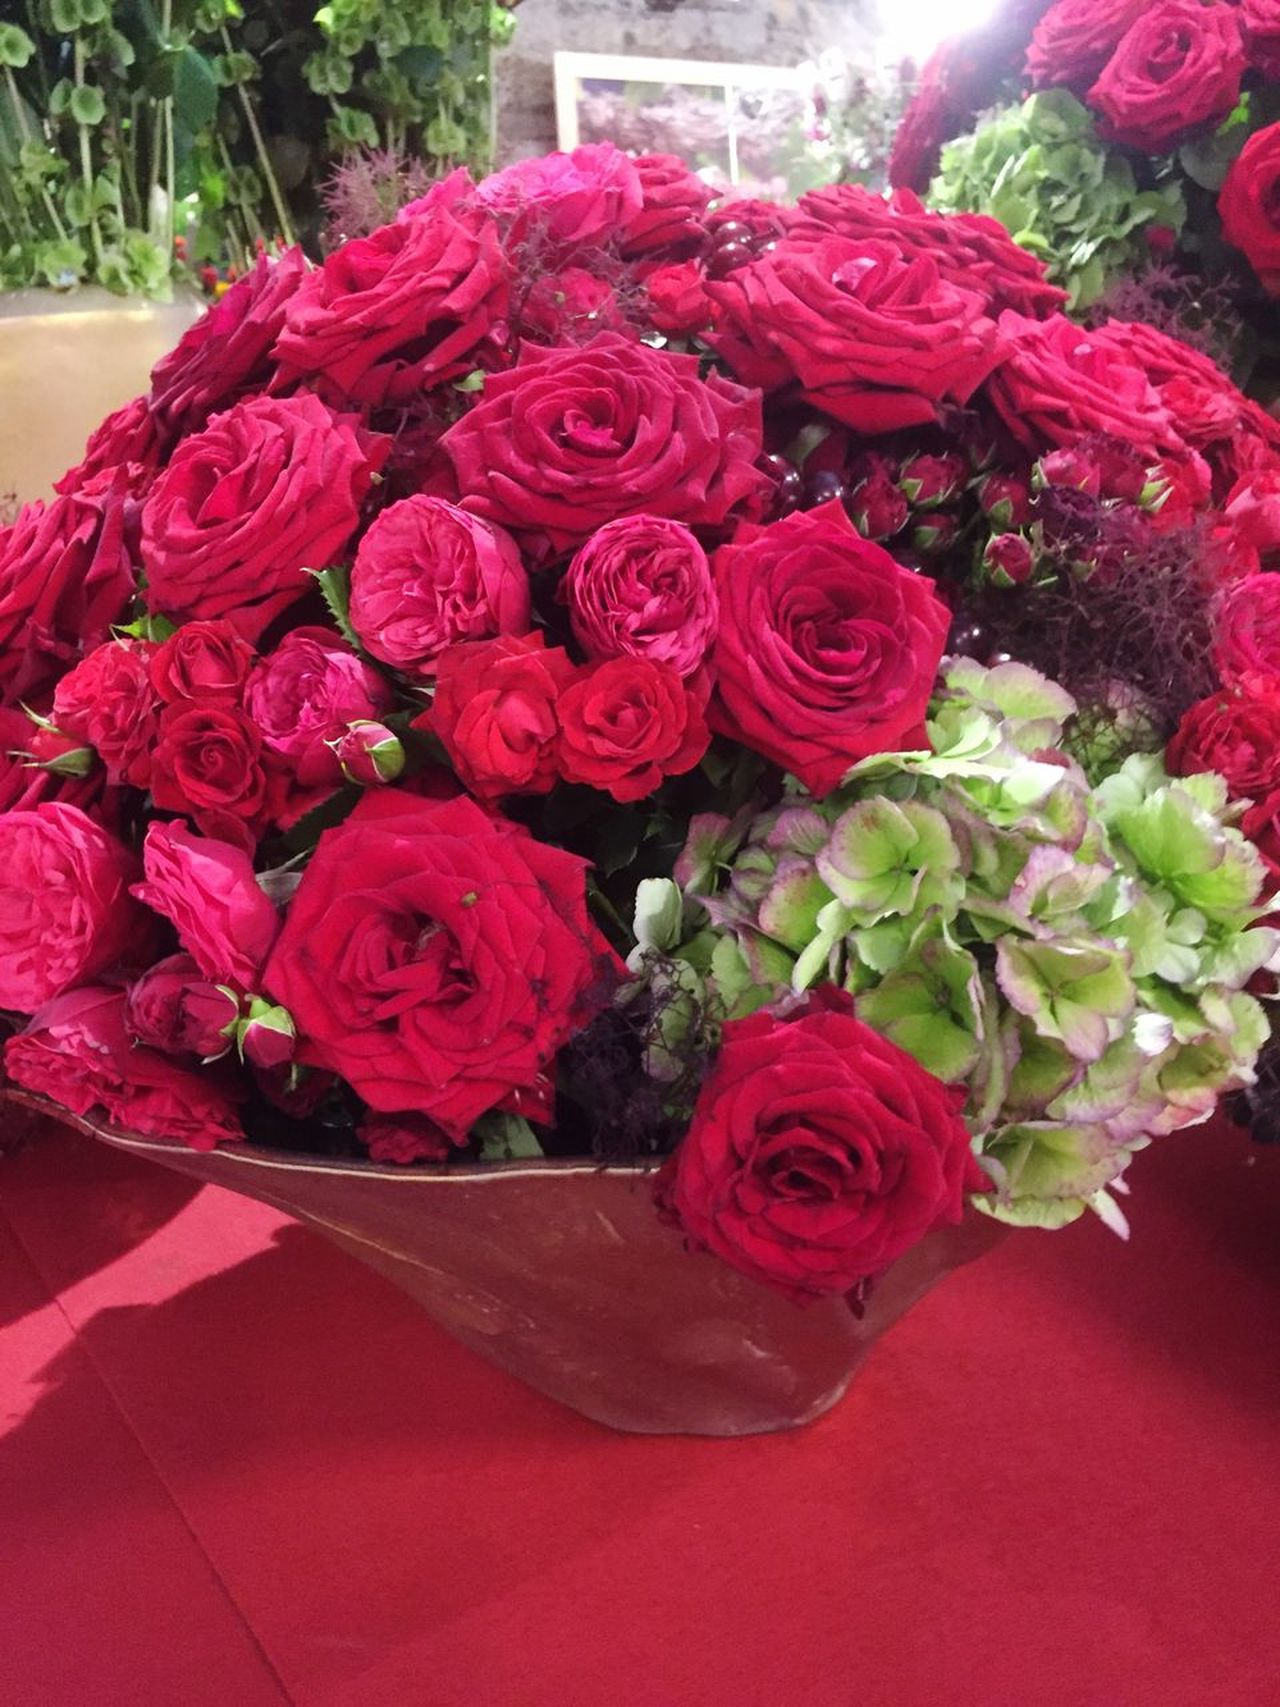 Flower bouquet with red roses Flower Rose - Flower Beauty In Nature Fragility Red Bouquet Petal Nature Freshness Flower Head No People Indoors  Day Flower Market Close-up Florist Decoration Valentine's Day  Flower Arrangement Mother's Day Red